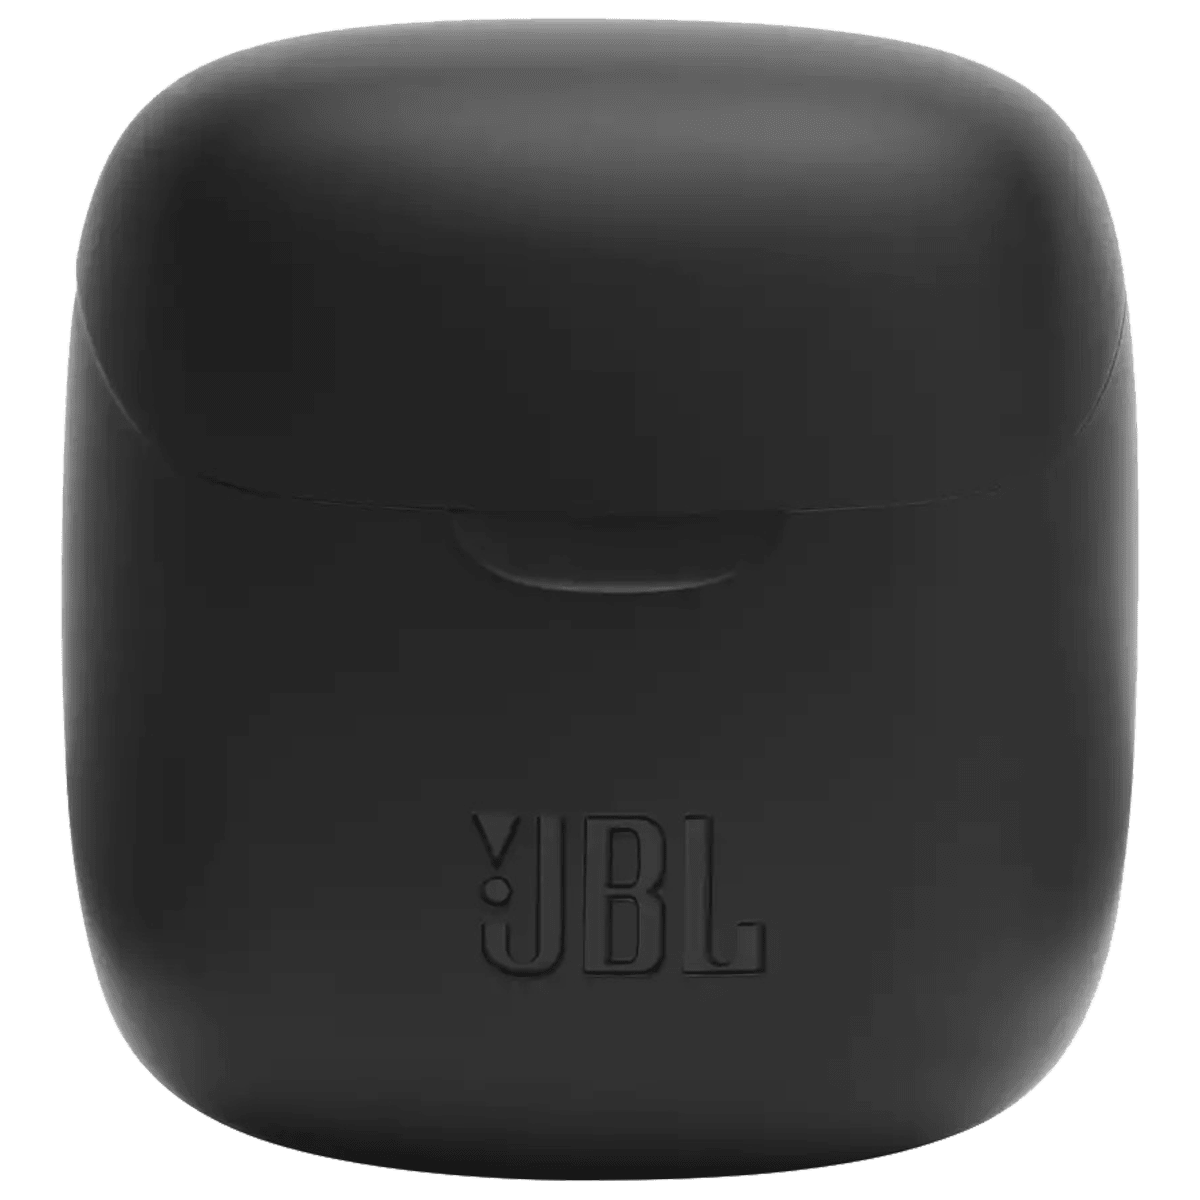 JBL Tune In-Ear Truly Wireless Earbuds with Mic (Bluetooth 5.0, Rechargeable Battery, T225 TWS, Black)